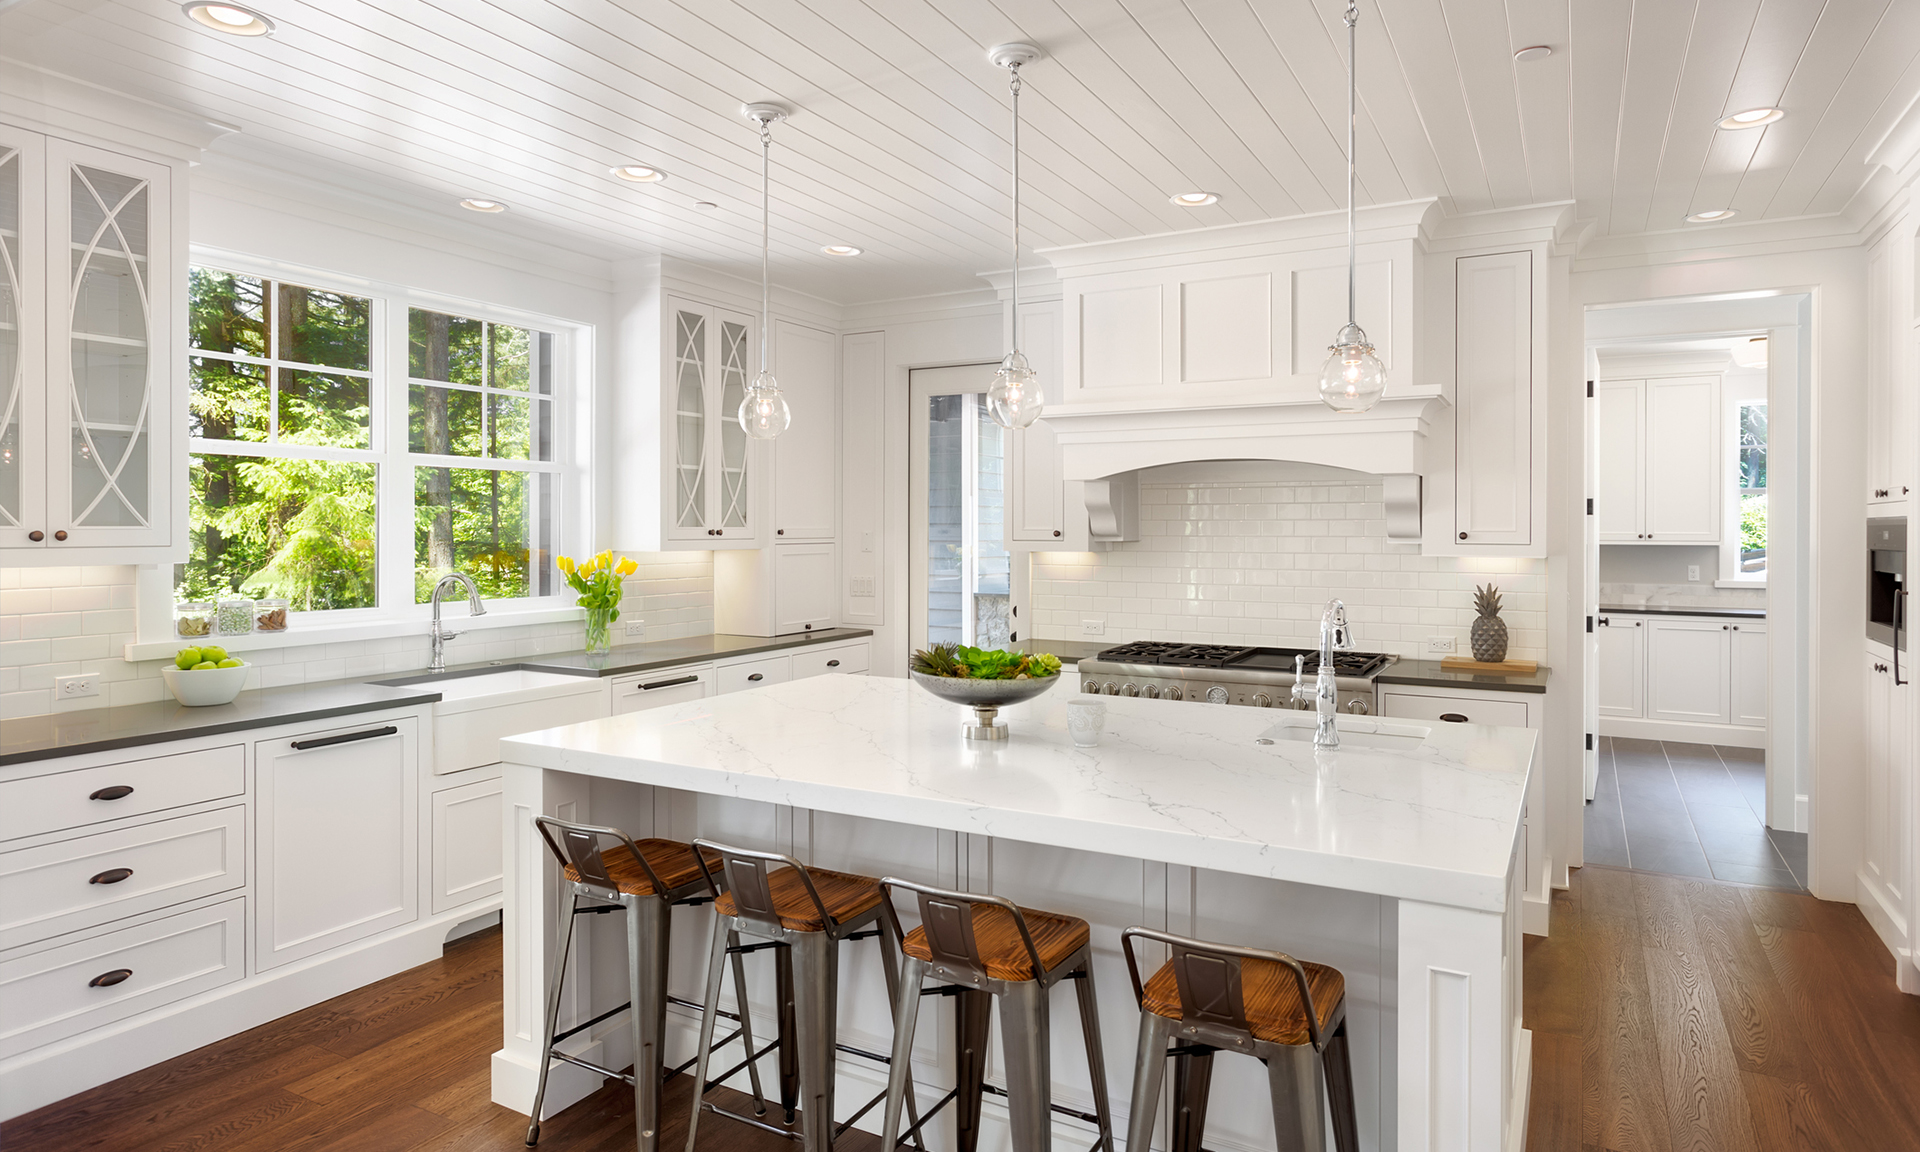 Best fitted kitchen companies for 2016 revealed by which survey best fitted kitchen companies for 2016 revealed by which survey which news fandeluxe Gallery